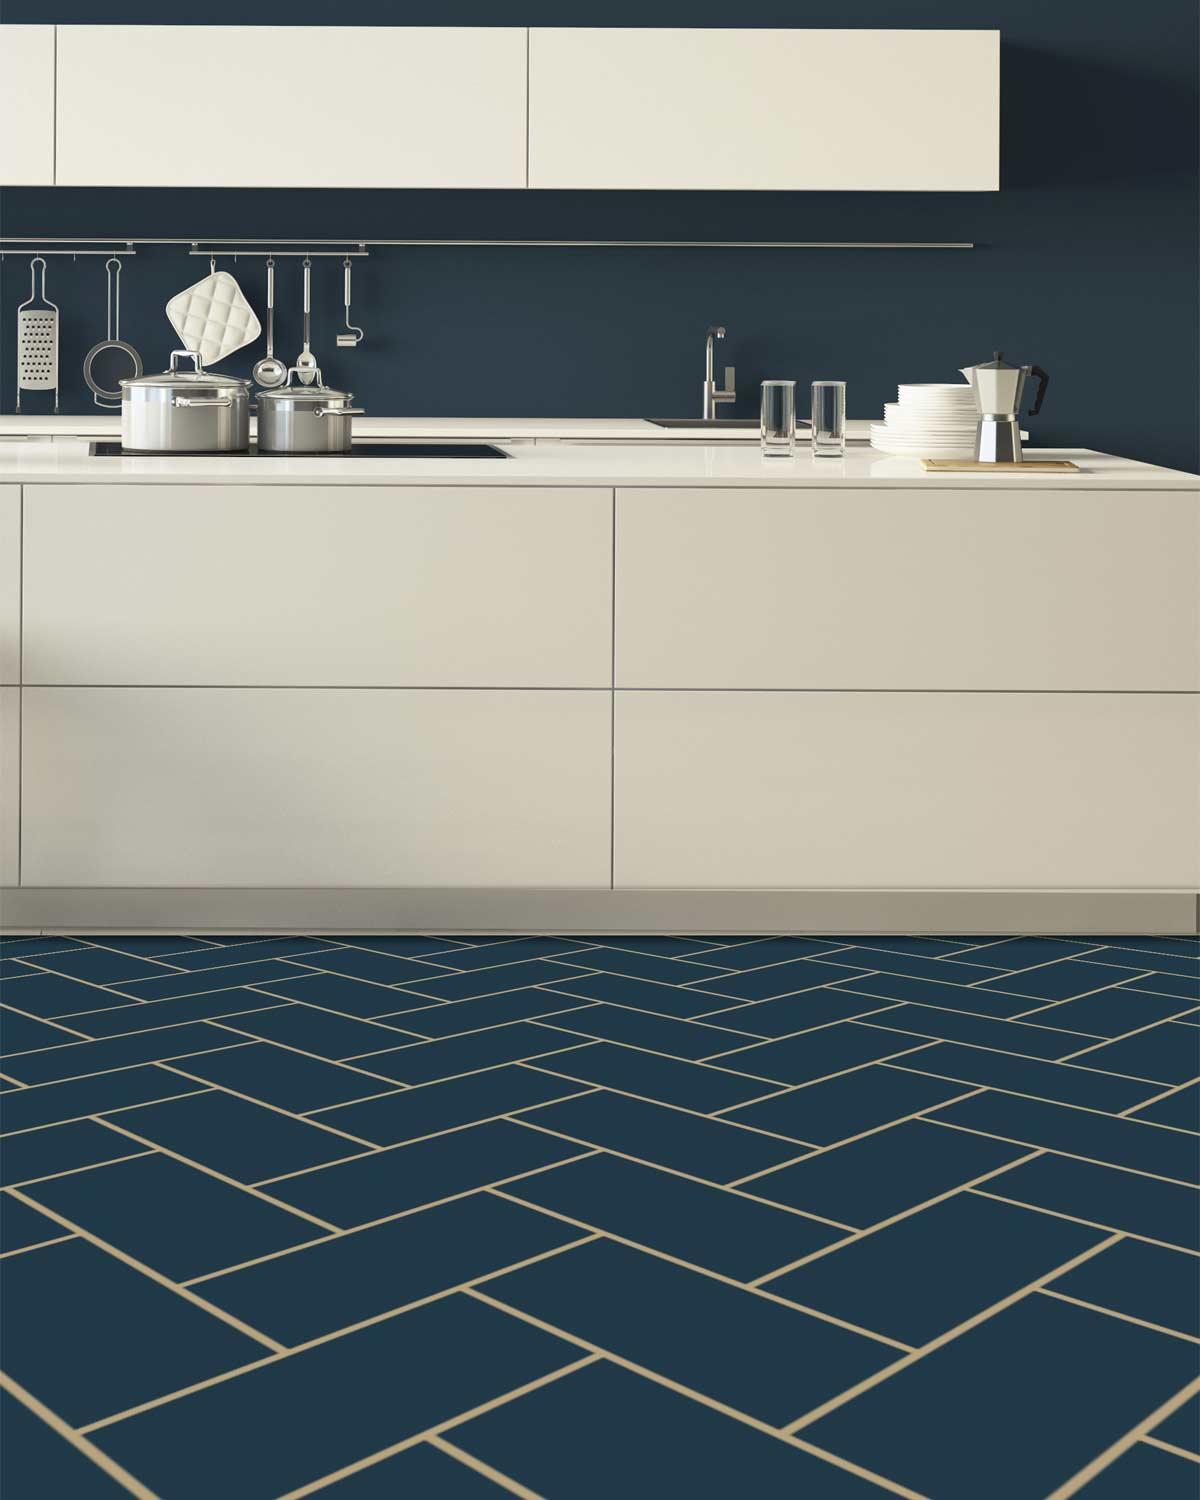 Image of a bespoke deep blue herringbone vinyl flooring shown in a modern kitchen only available from forthefloorandmore.com